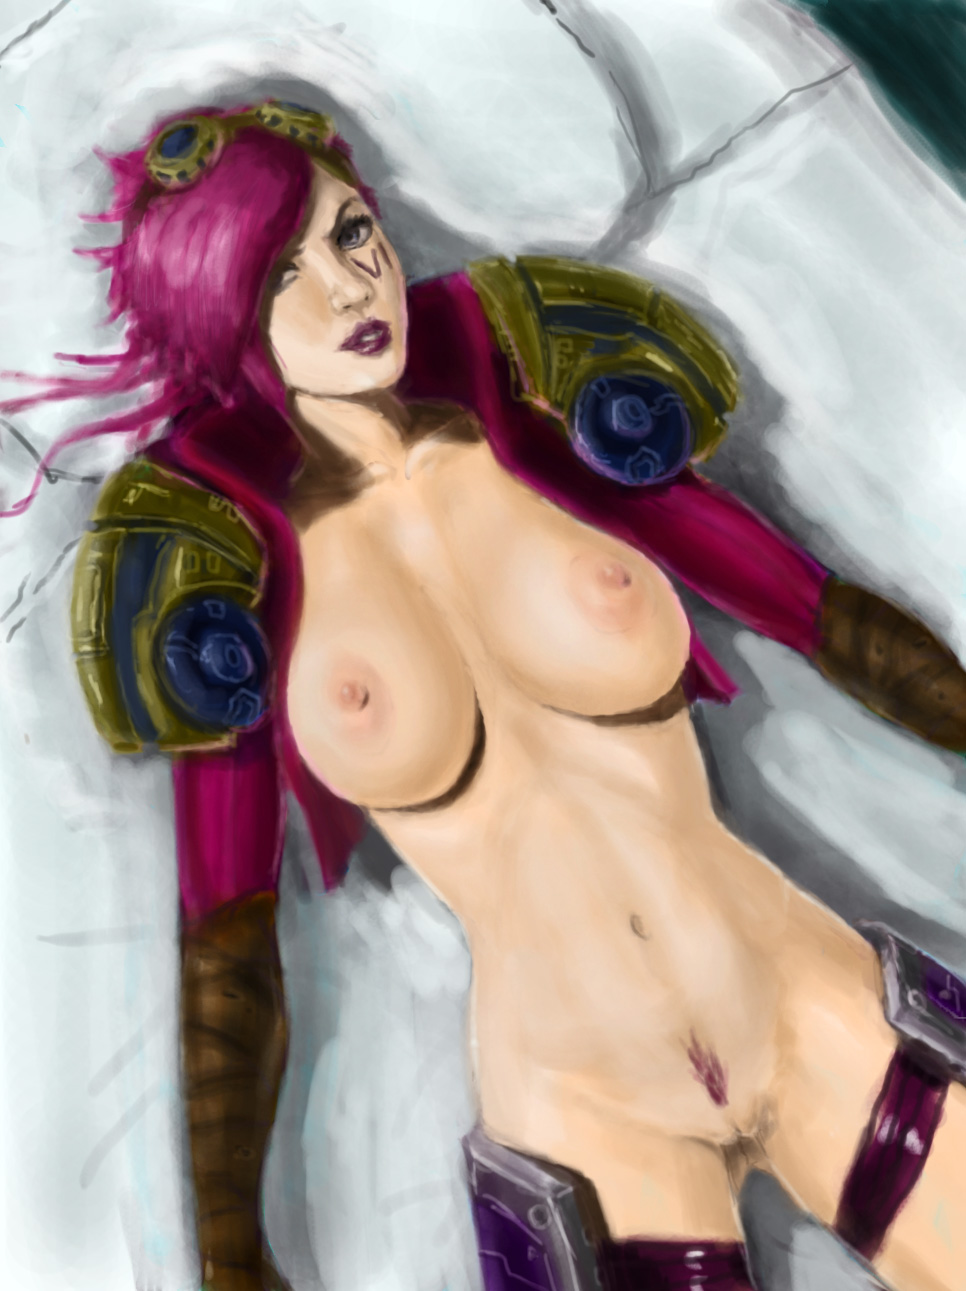 Anime vi nude league of legends pics adult photo